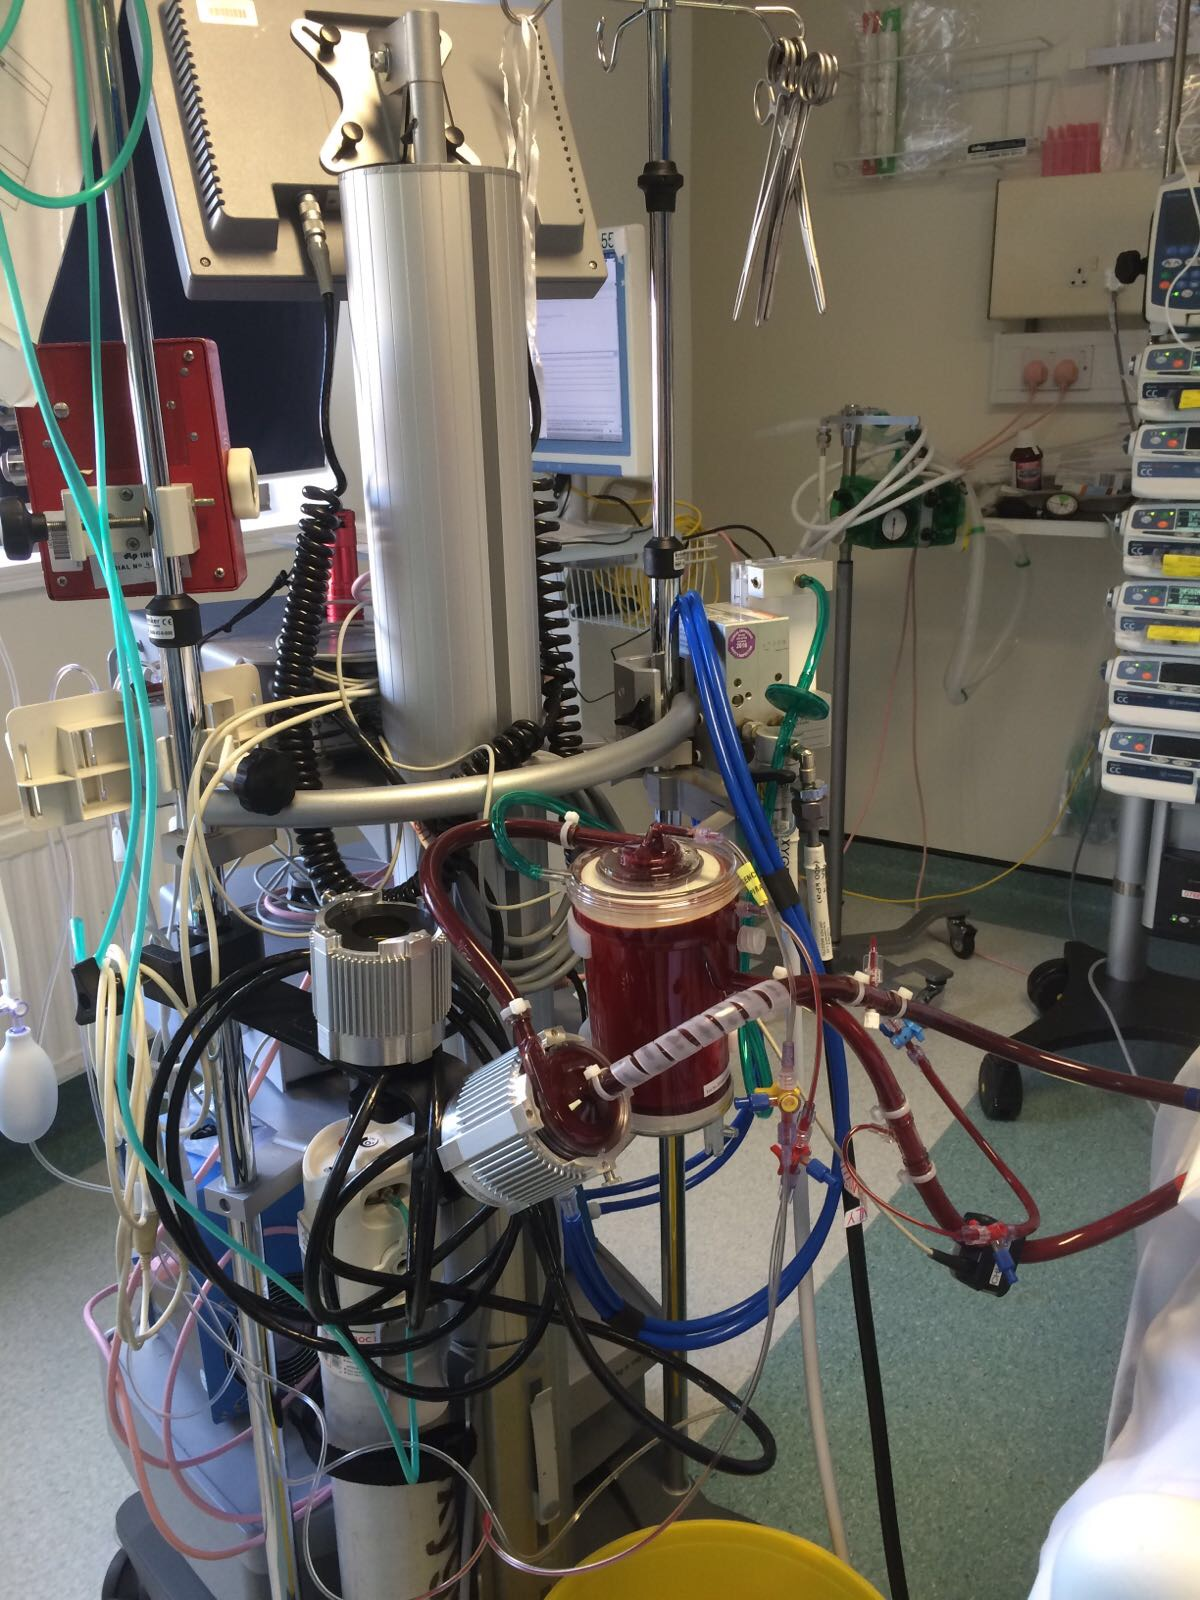 cystic fibrosis niv, cystic fibrosis lung transplant, cystic fibrosis ecmo, ecmo lung transplant